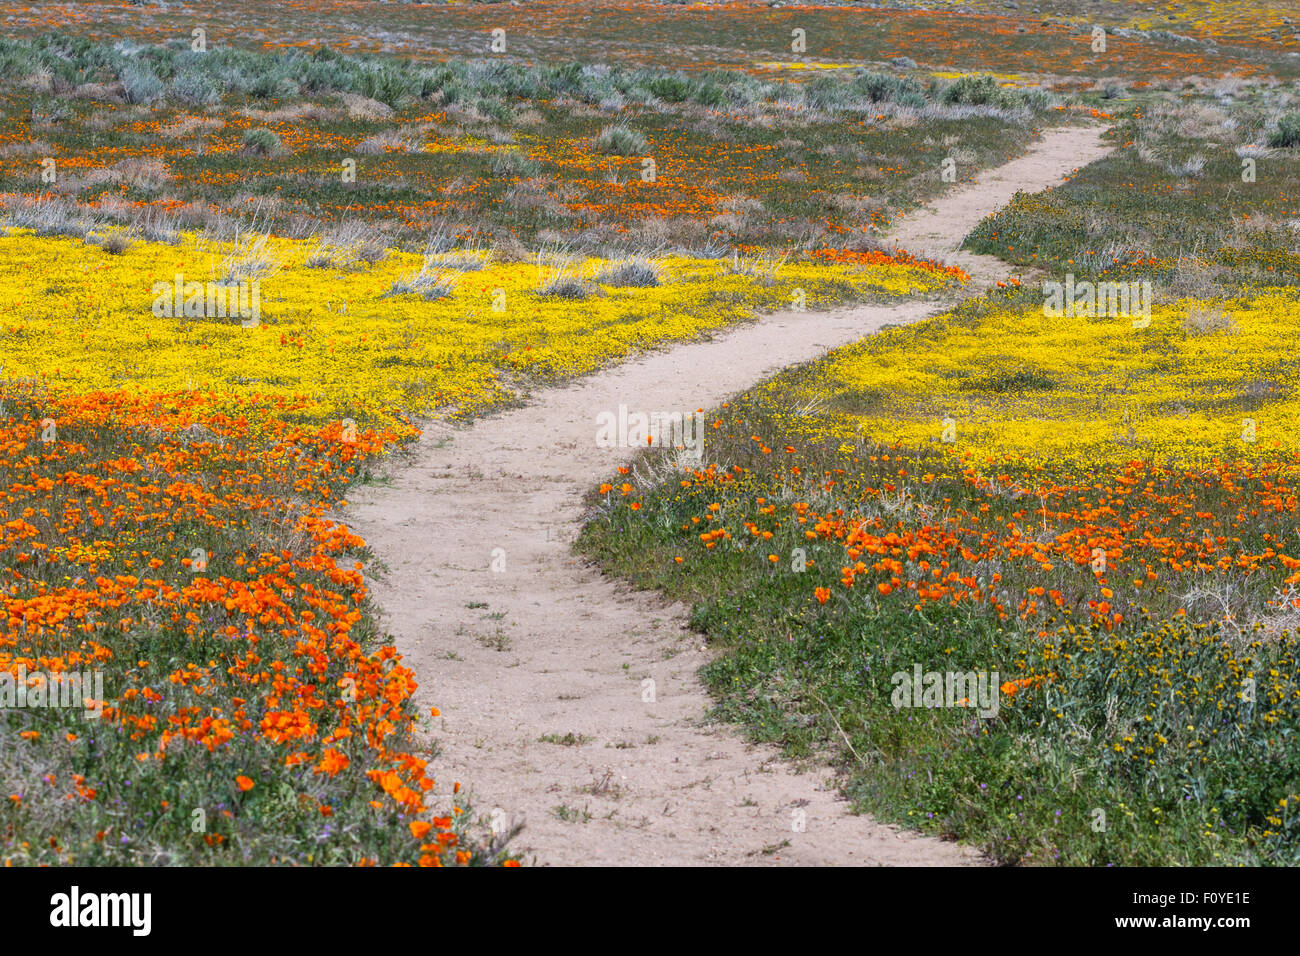 Early spring flowers blooming along the walking trail of the early spring flowers blooming along the walking trail of the antelope valley poppy preserve in california mightylinksfo